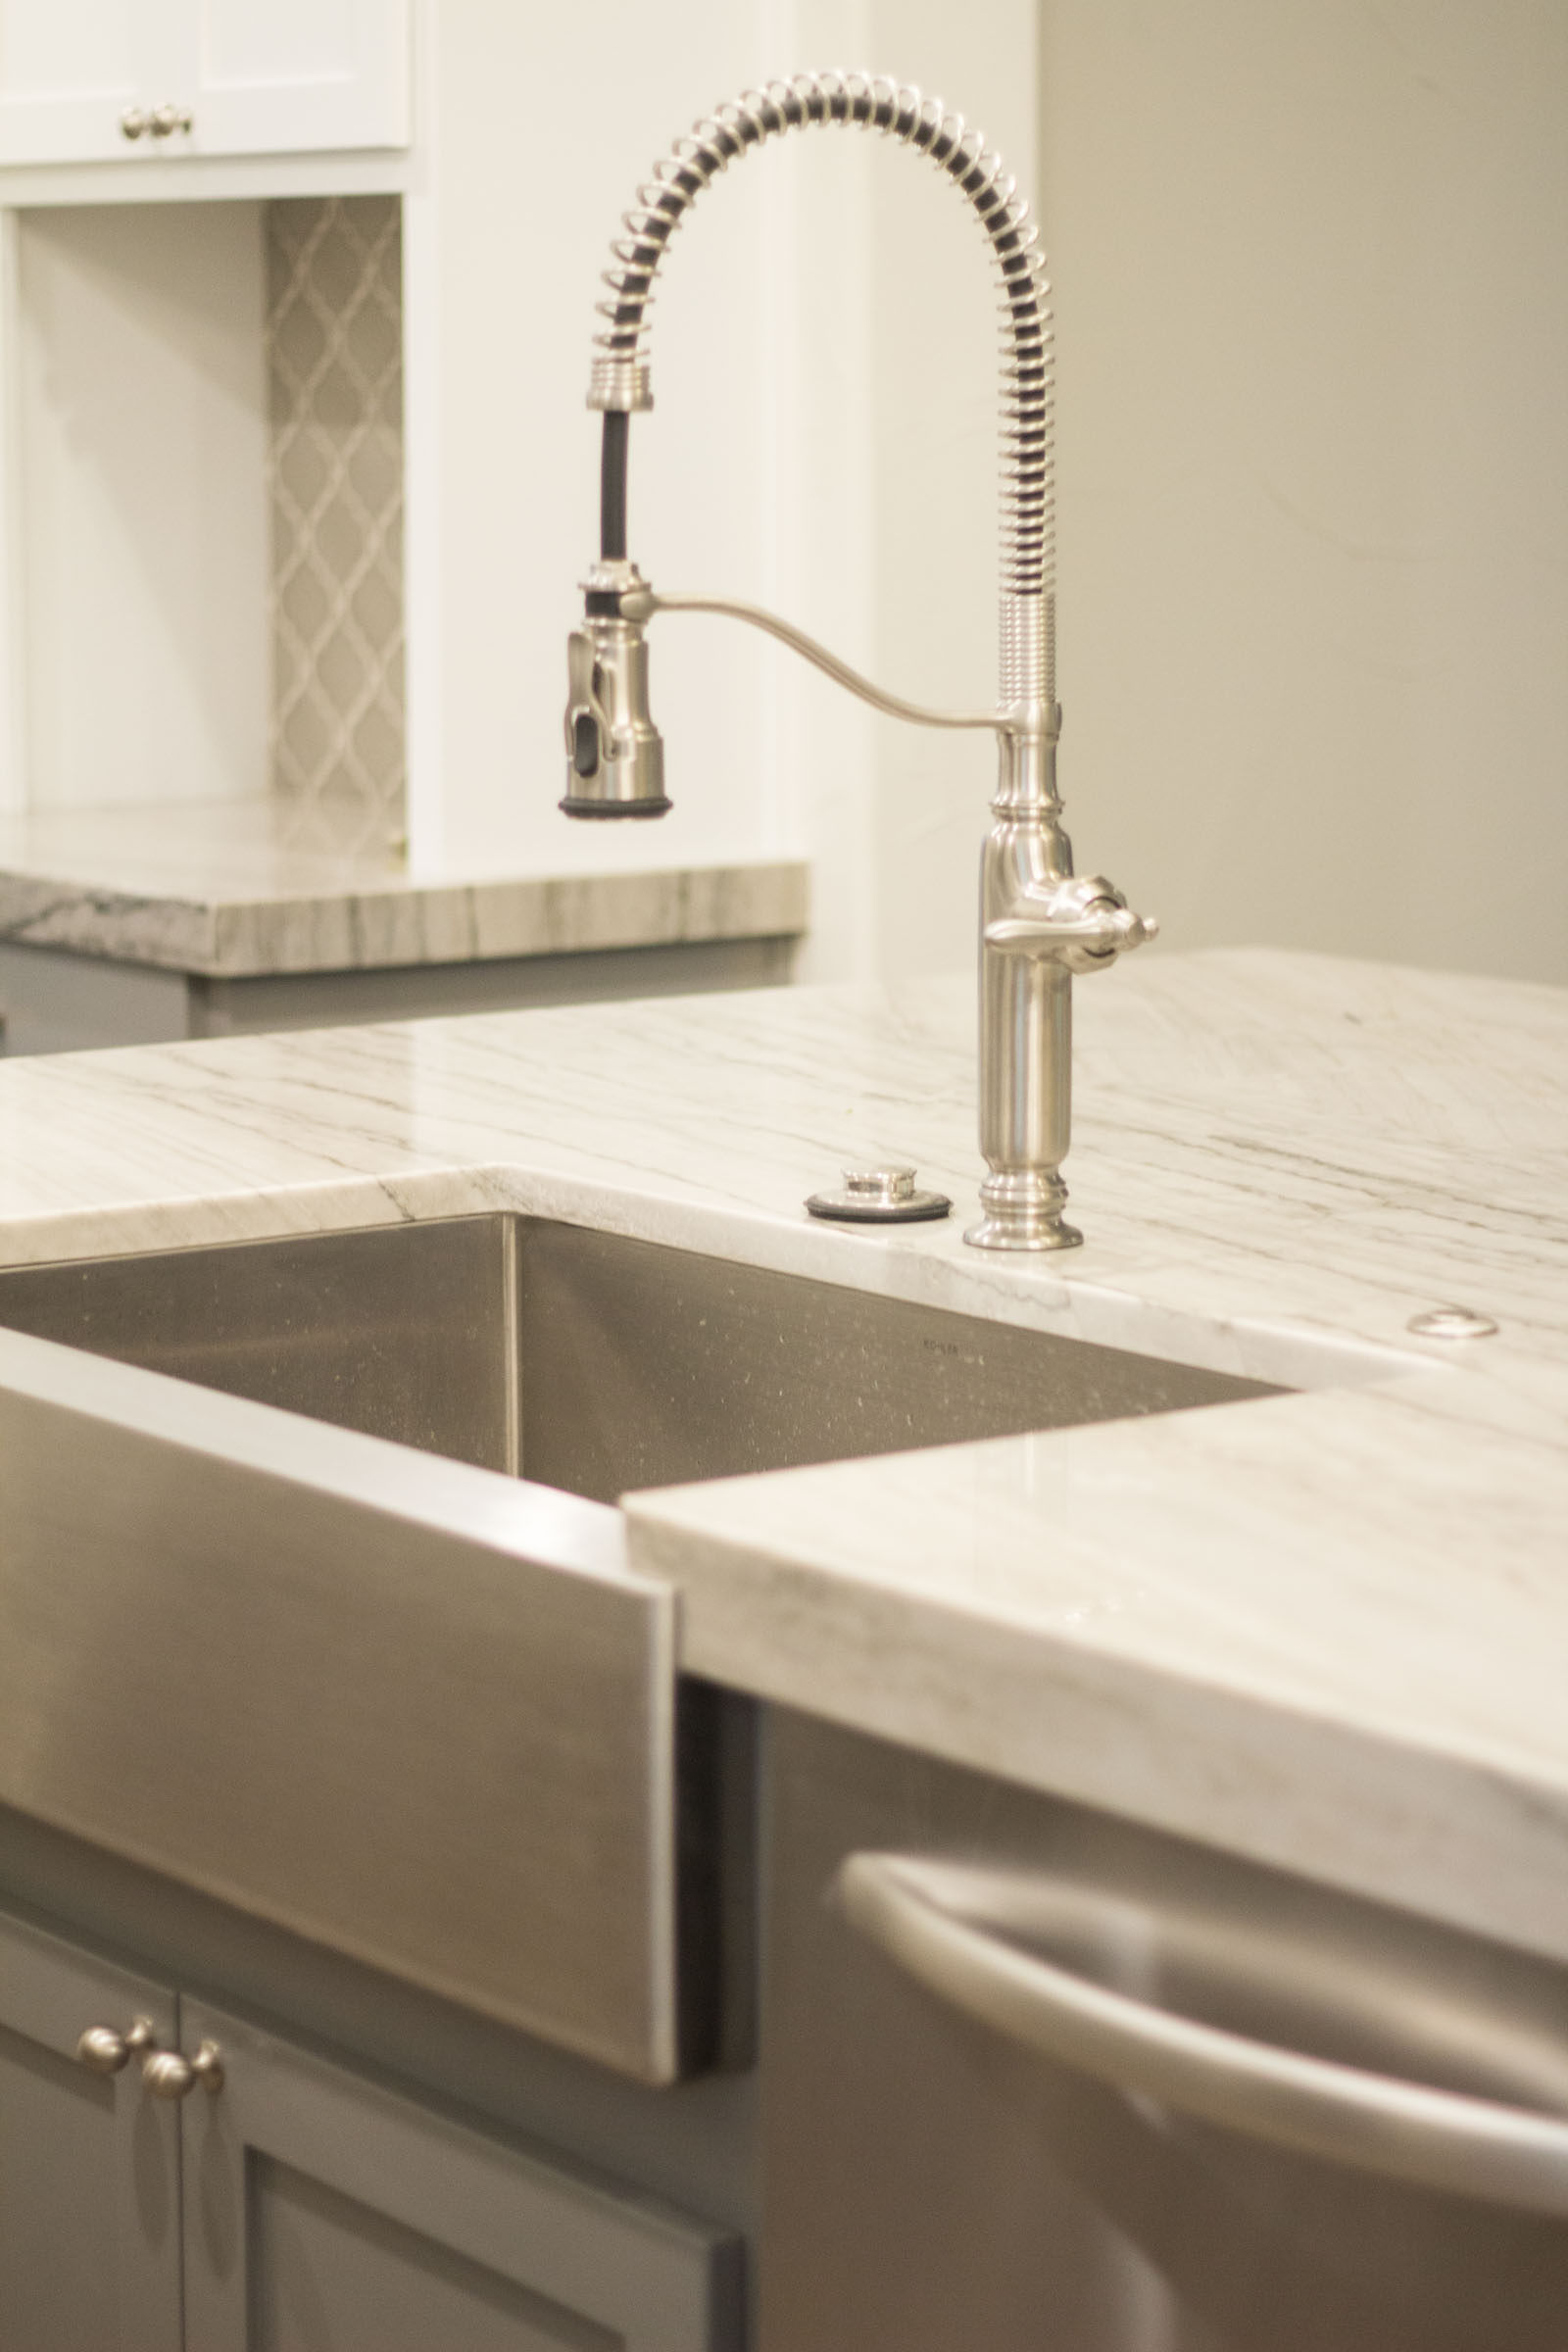 Farmhouse sink with high arch faucet, pull down sprayer, built in disposal button, stainless steel appliances